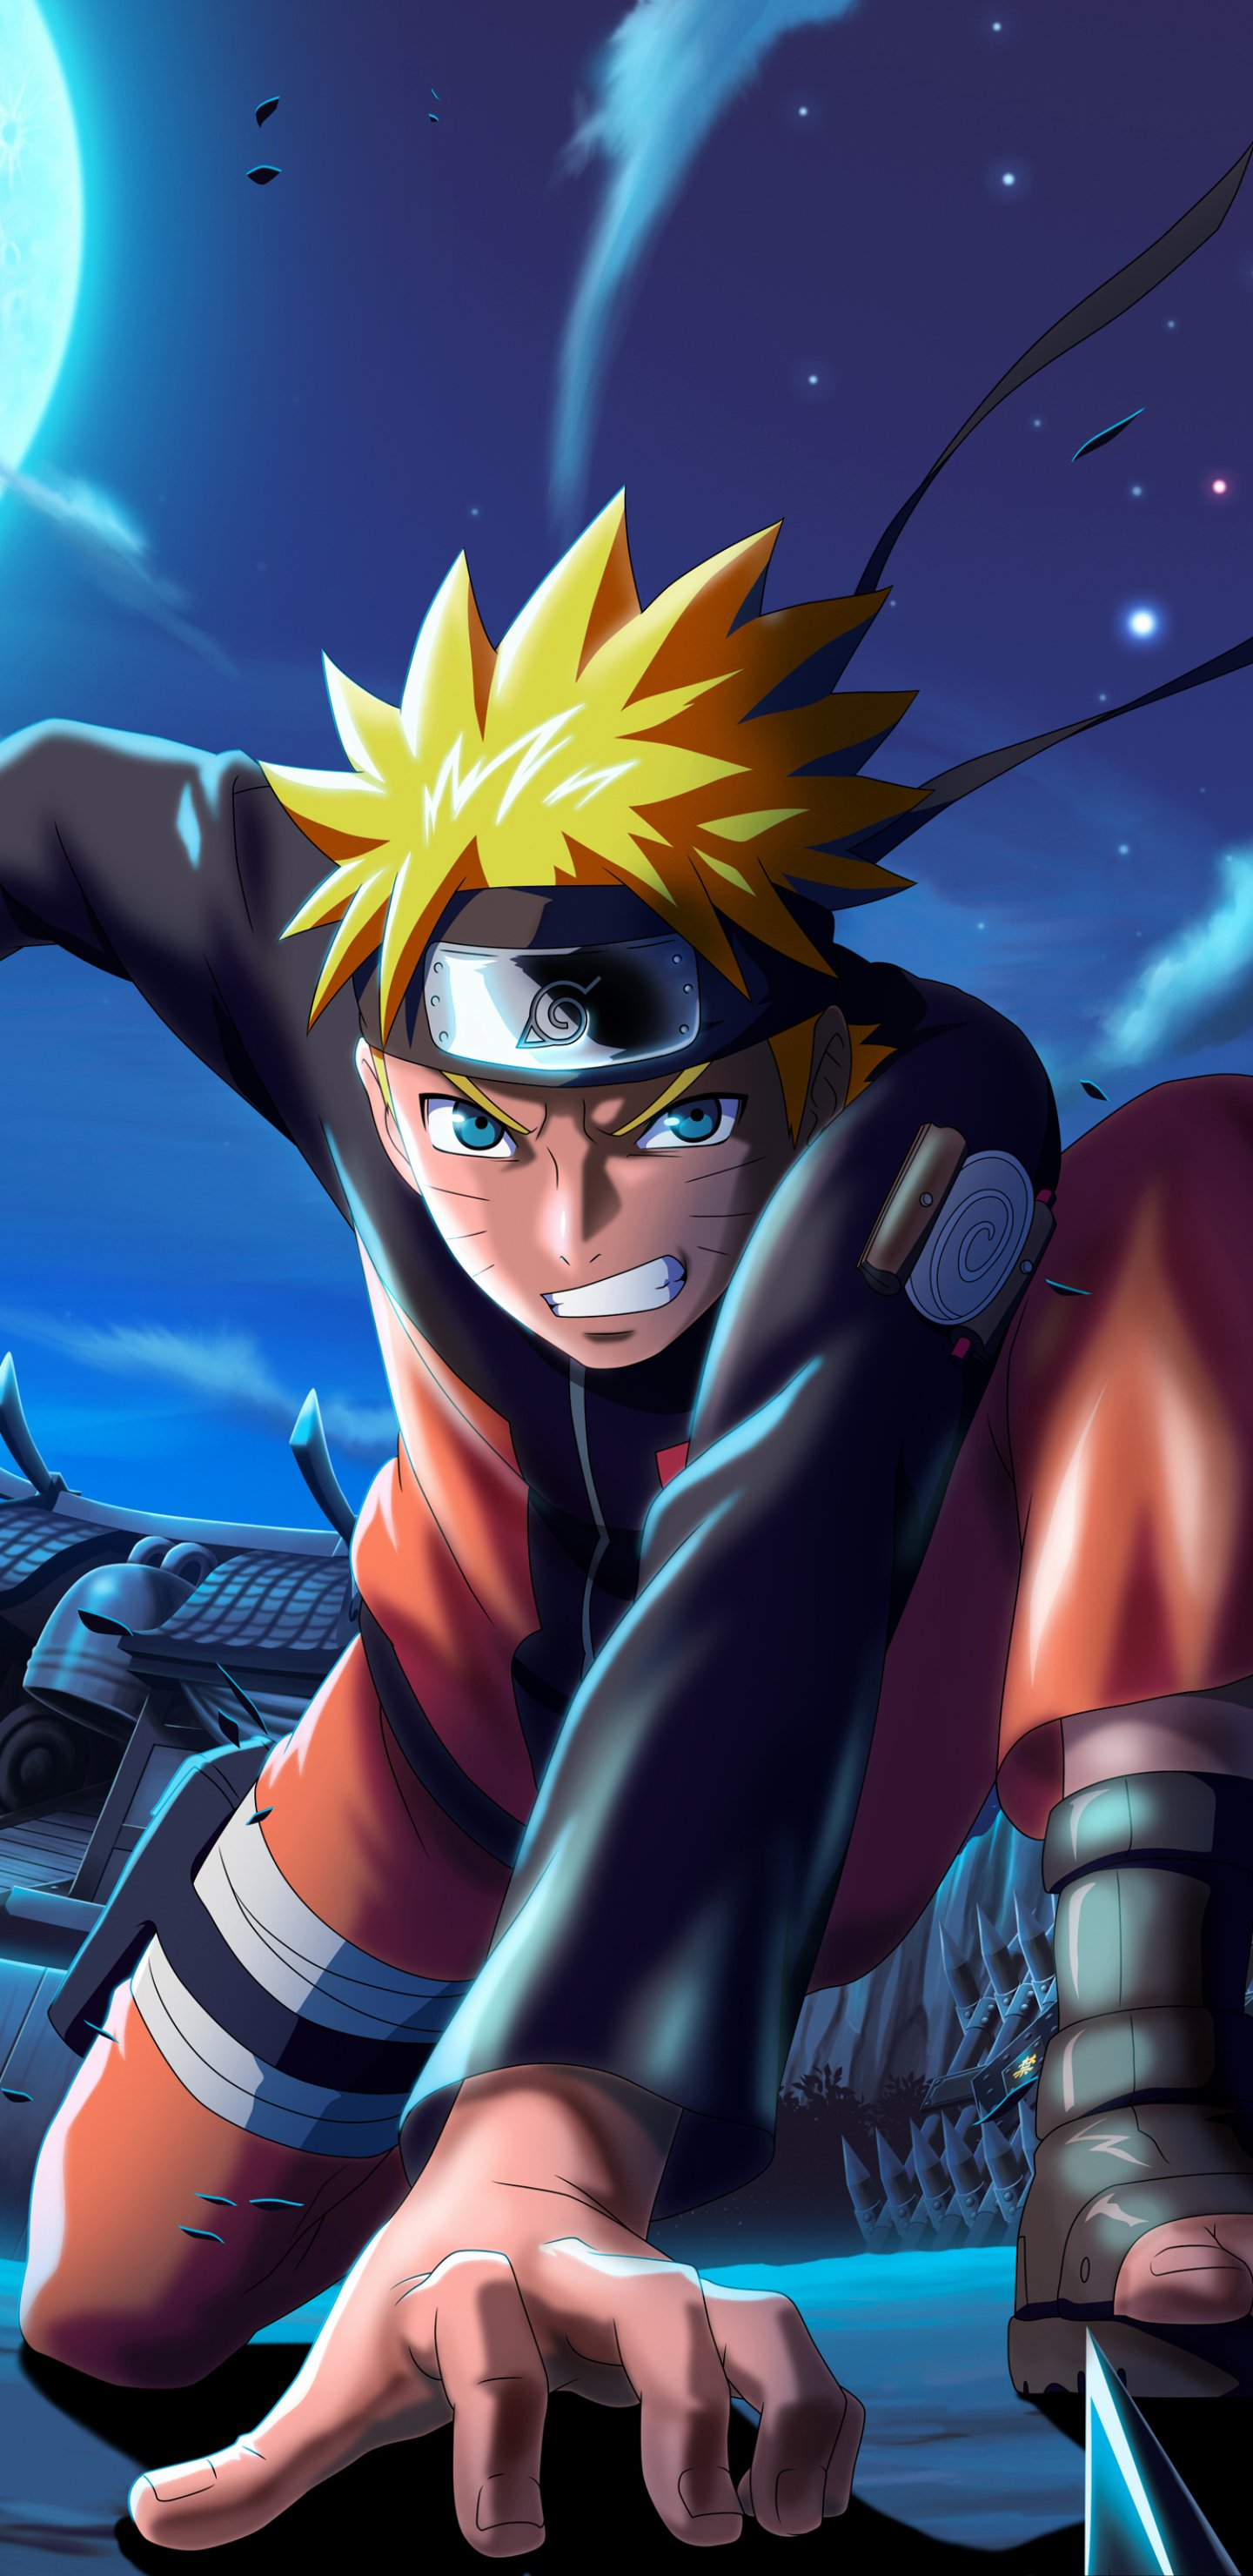 Anime Naruto 1440x2960 Wallpaper Id 760598 Mobile Abyss